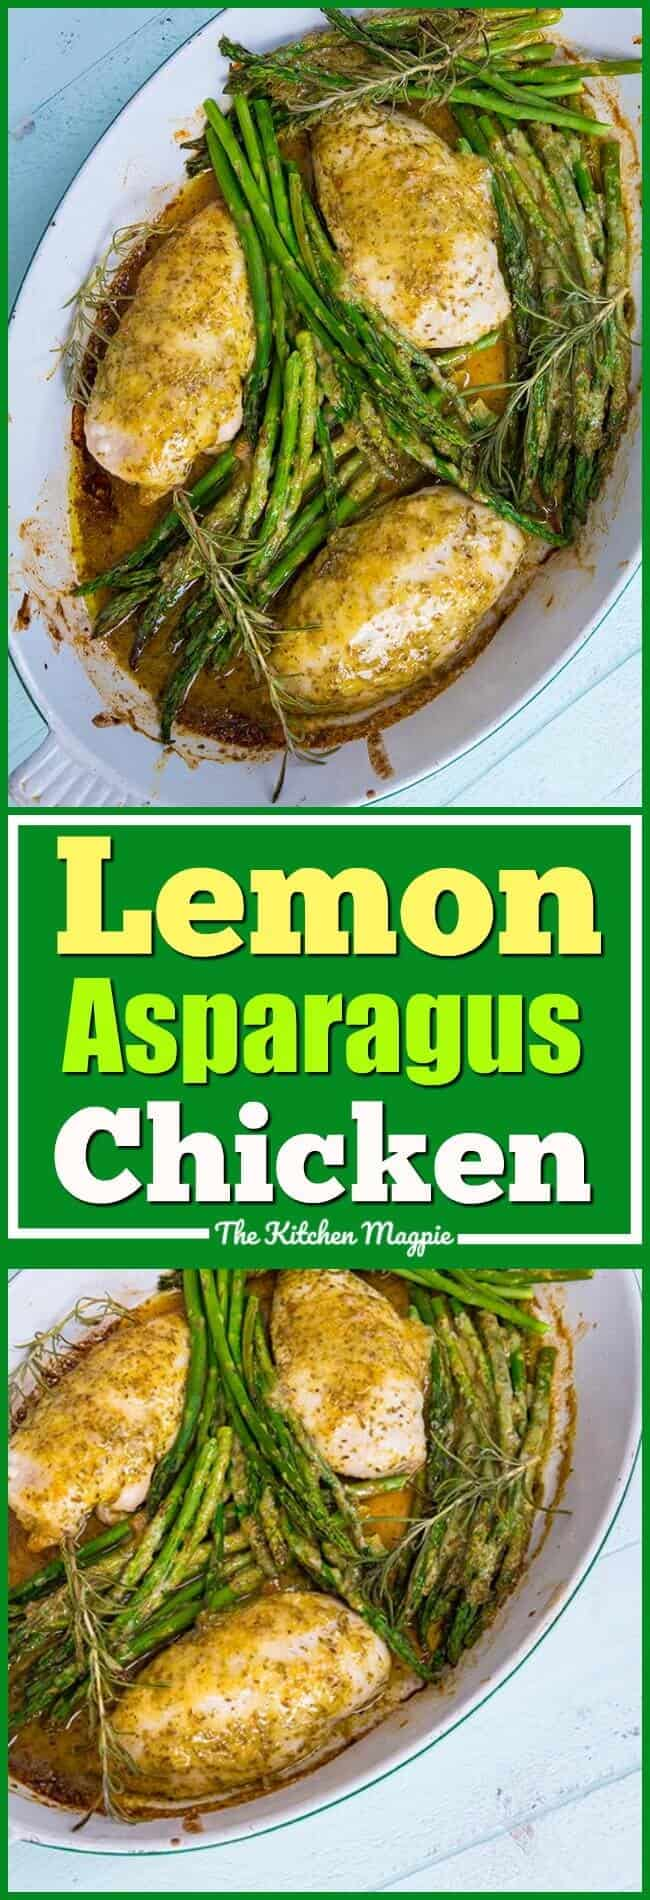 This Rosemary Lemon Chicken & Asparagus Dinner is sure to be a hit with the family! The fresh tang of lemon paired with rosemary and garlic is perfect for both the chicken AND the asparagus! #recipe #asparagus #lemon #chicken #healthy